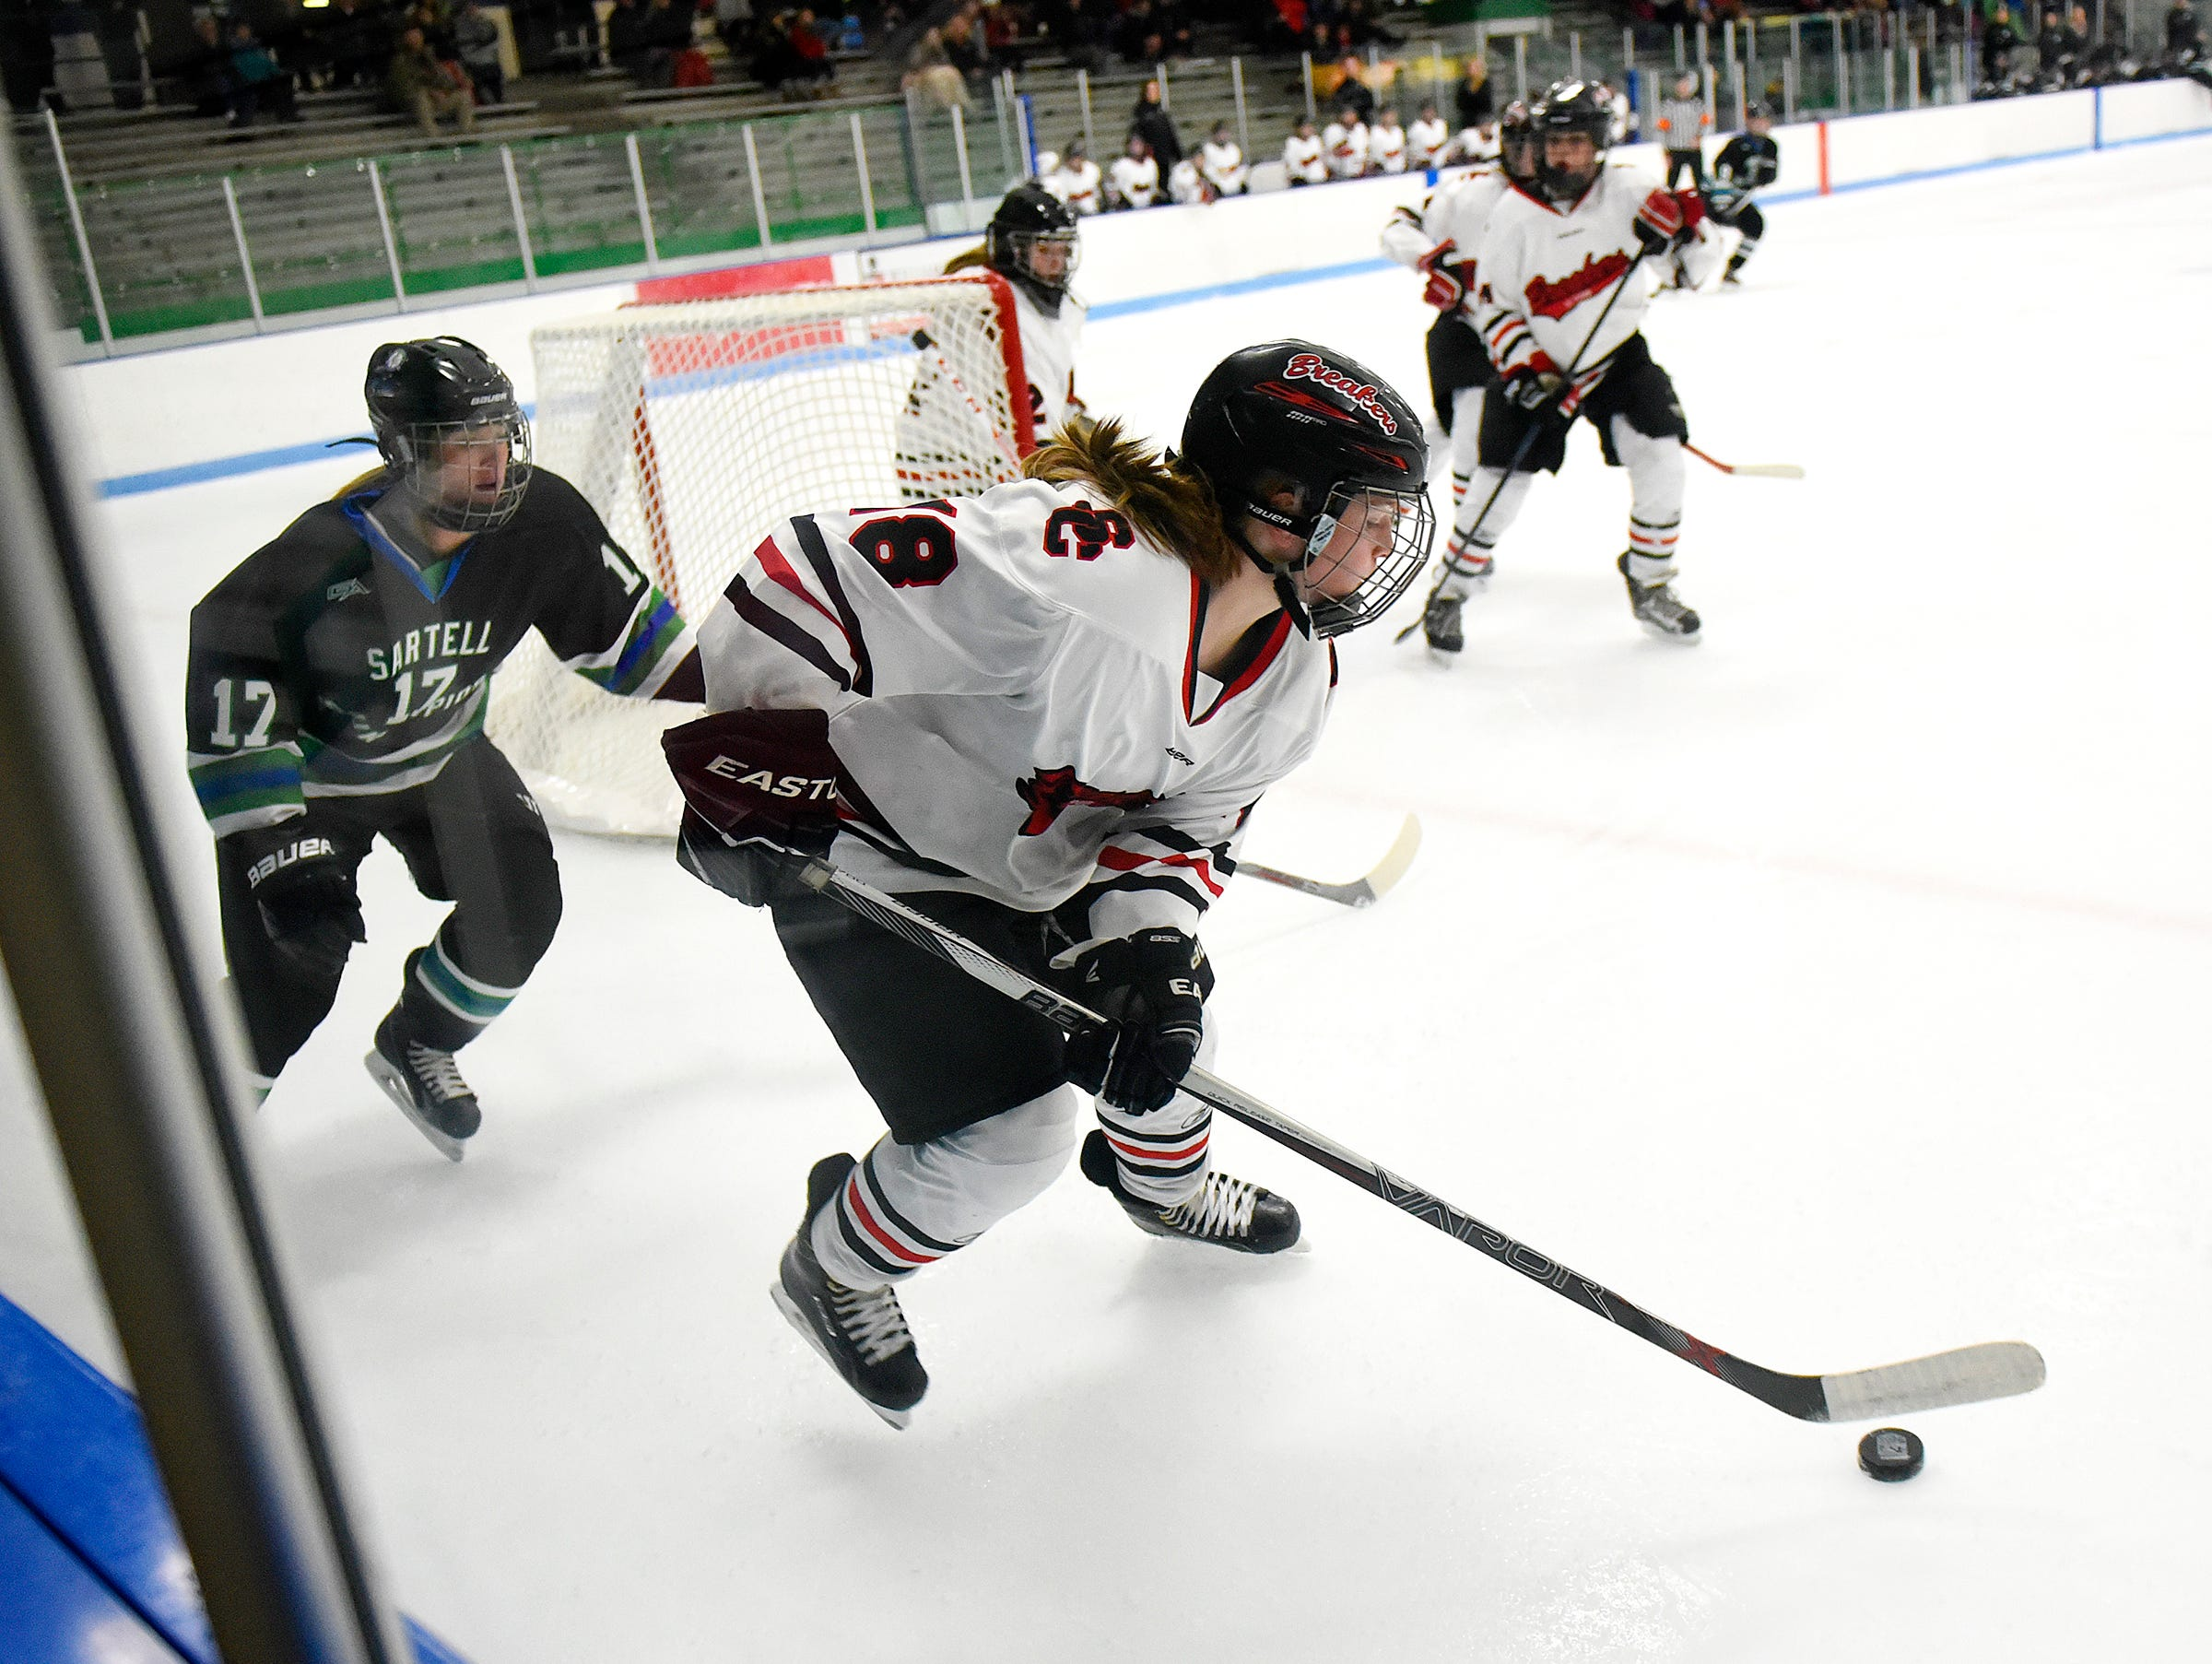 Jordann Swingle of the Icebreakers skates with the puck near the boards during the first period of Thursday's game at the MAC in St. Cloud.